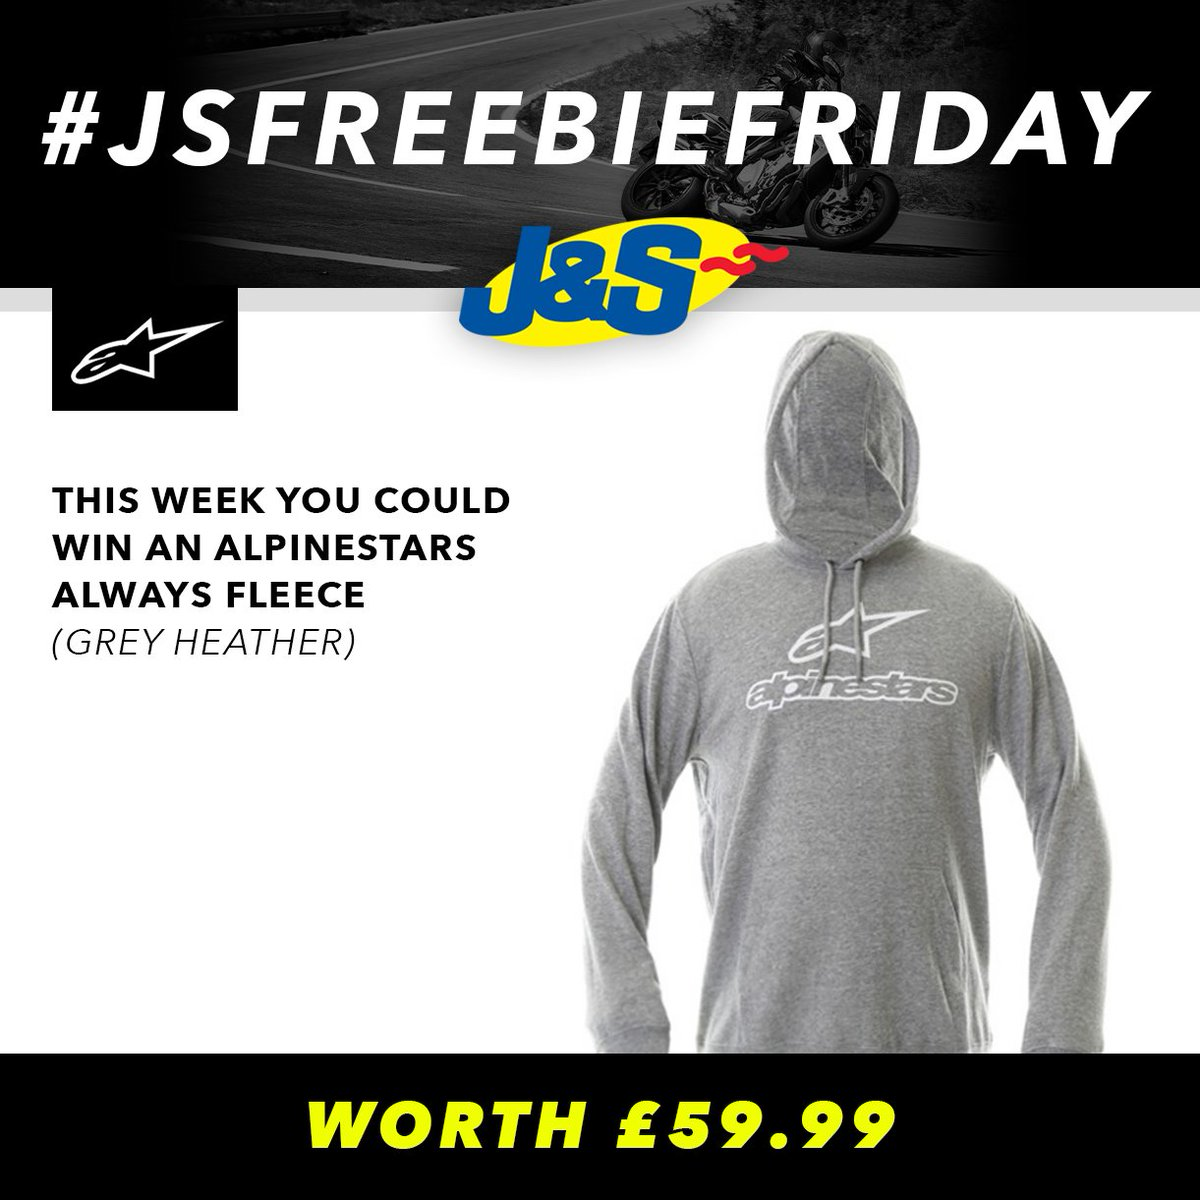 #JSFREEBIEFRIDAY Follow us & retweet this for a chance to win an Alpinestars Always Fleece in Grey Heather worth £59.99. Ends Tues August 21st. You can also enter by signing up to our newsletter here:  Happy Friday everyone!